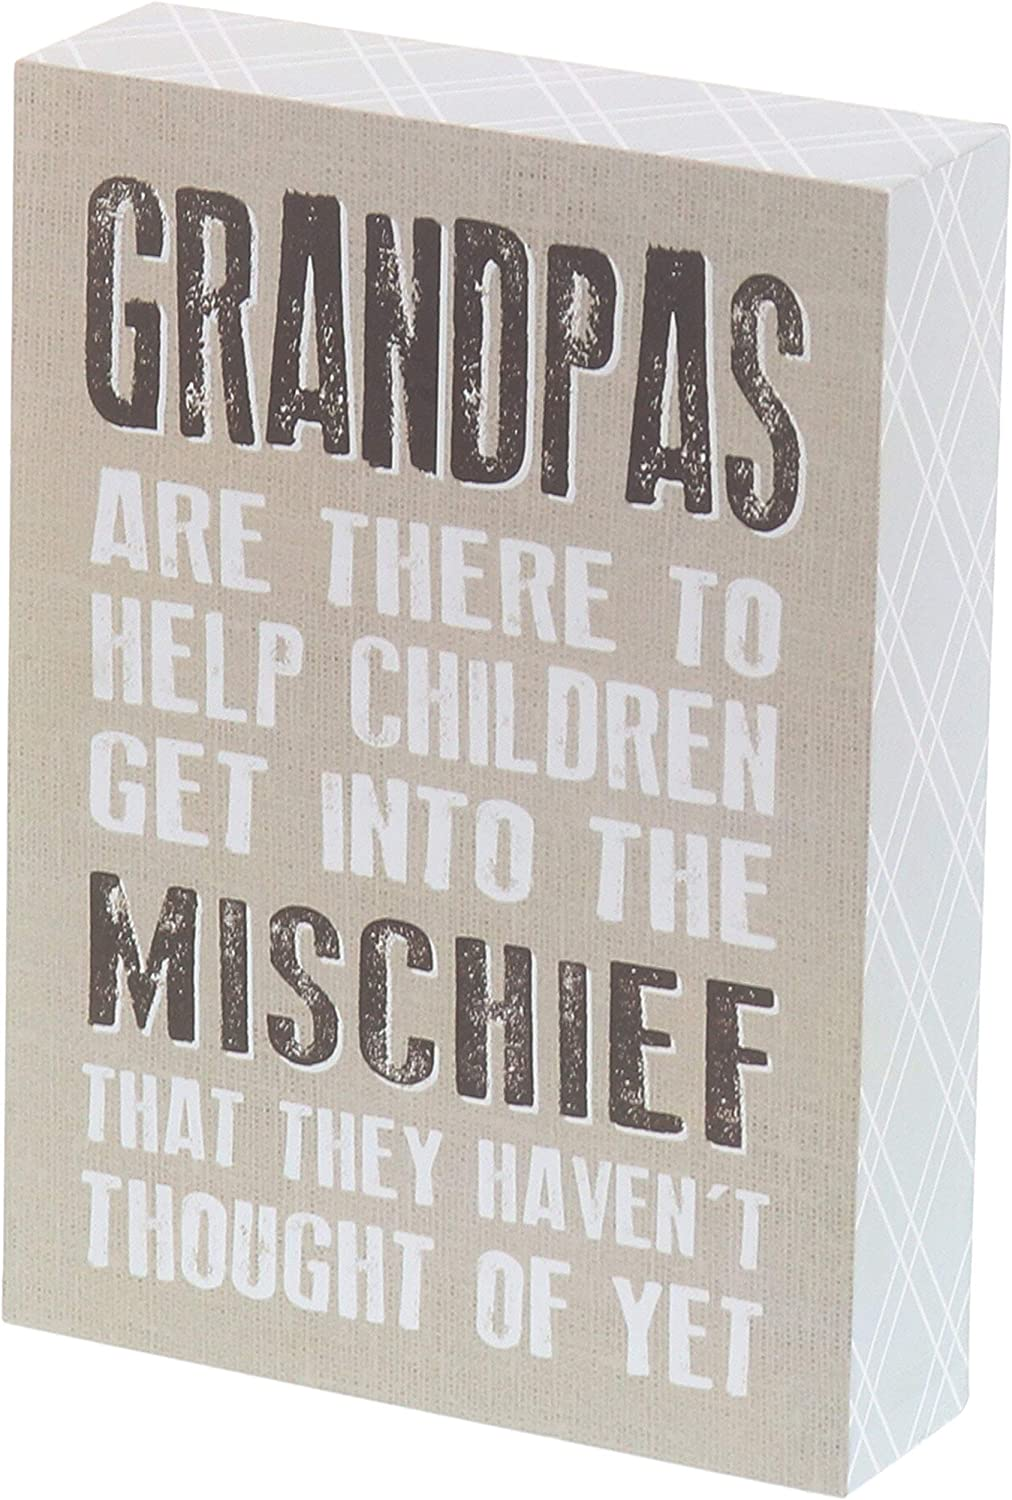 """Barnyard Designs Grandpas are There to Help Children Get Into Mischief Box Sign Decorative Wood Wall Decor Grandpa Gifts 7"""" x 5"""""""